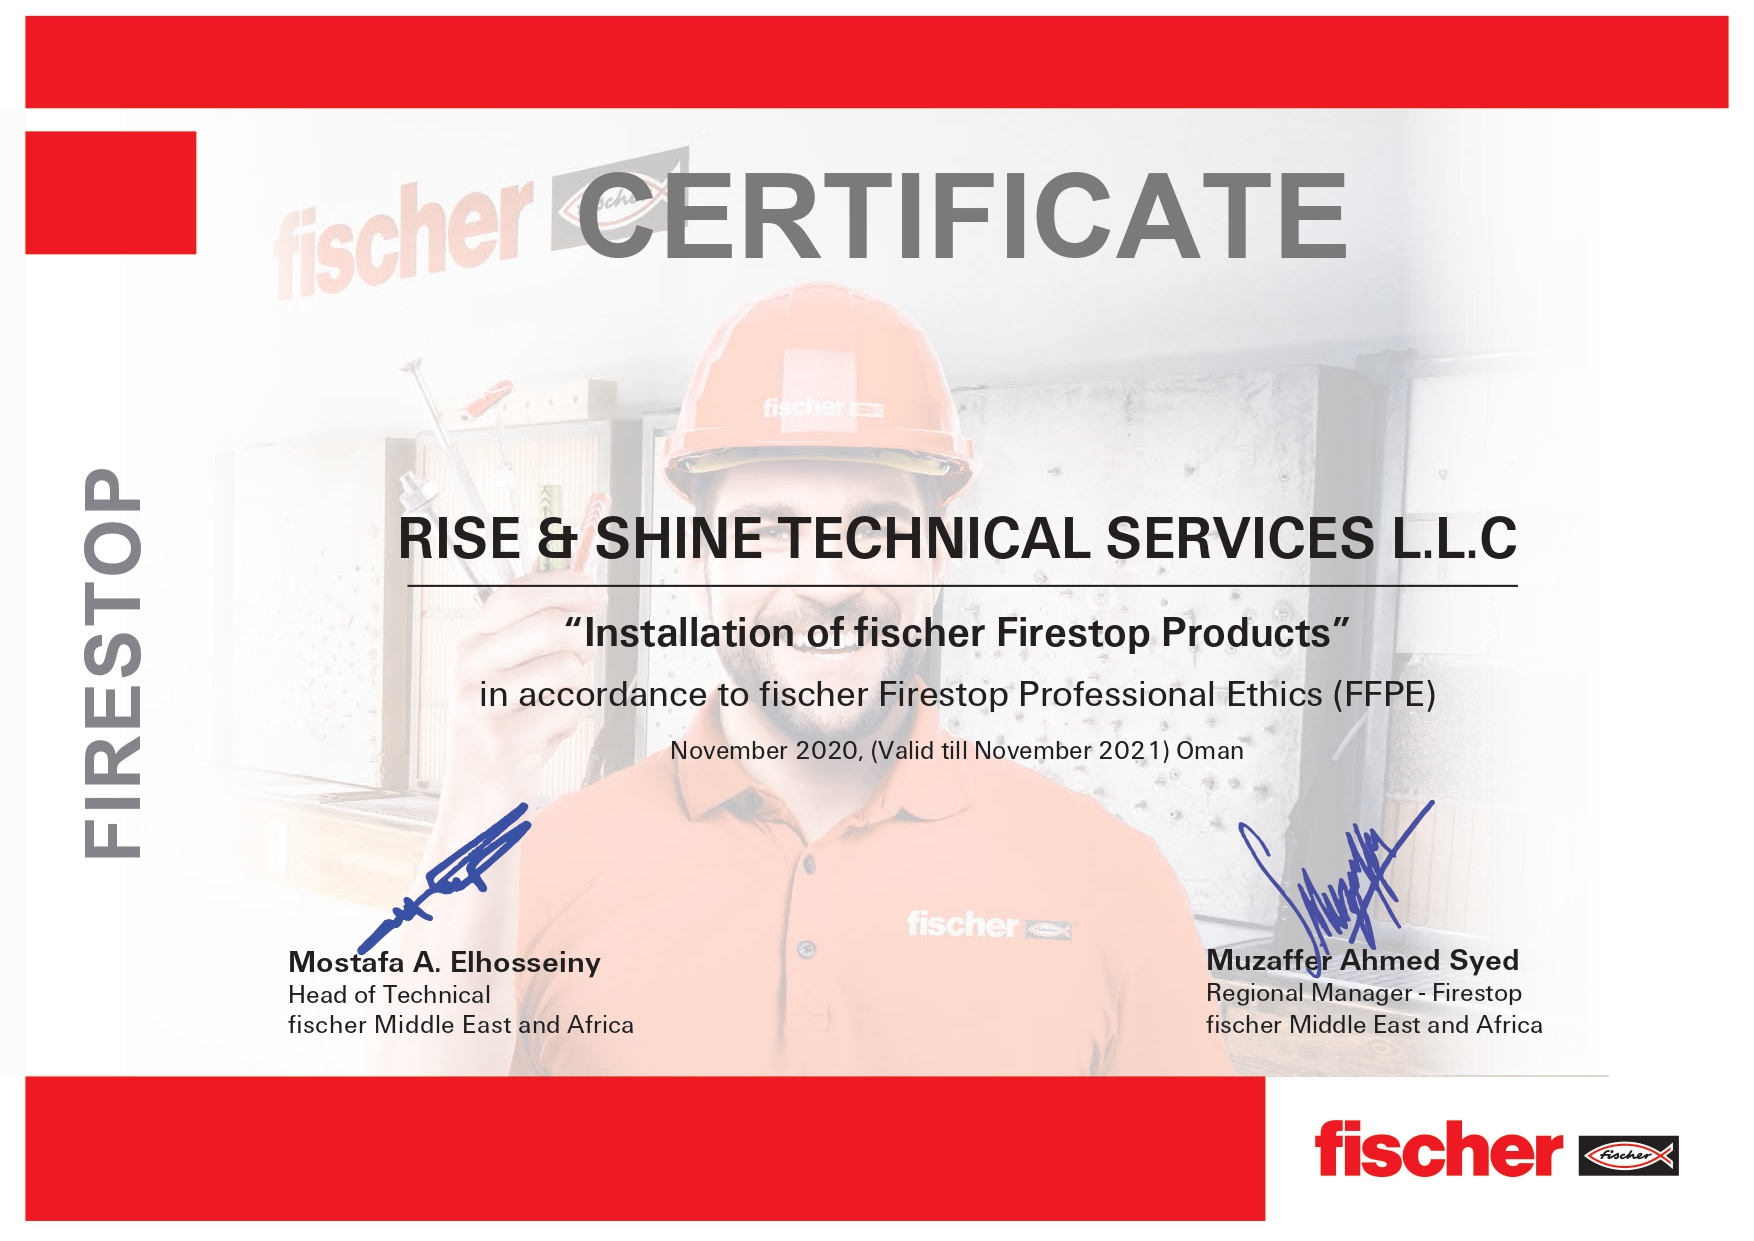 Fisher Certificate